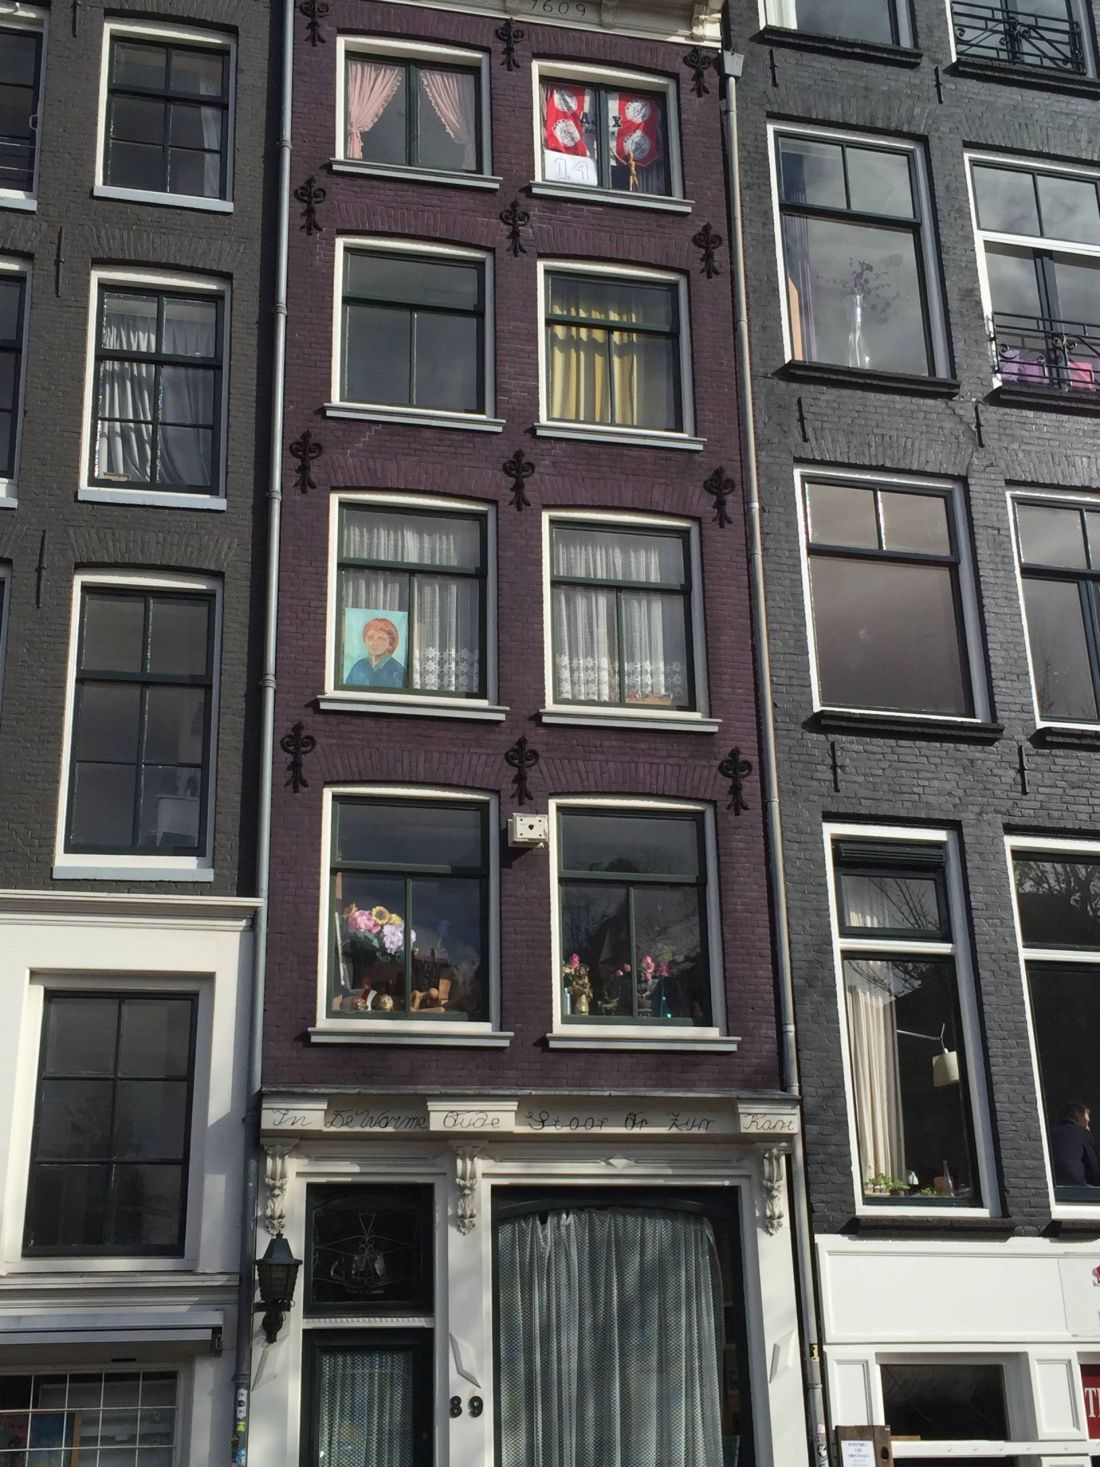 Shops in the Jordaan